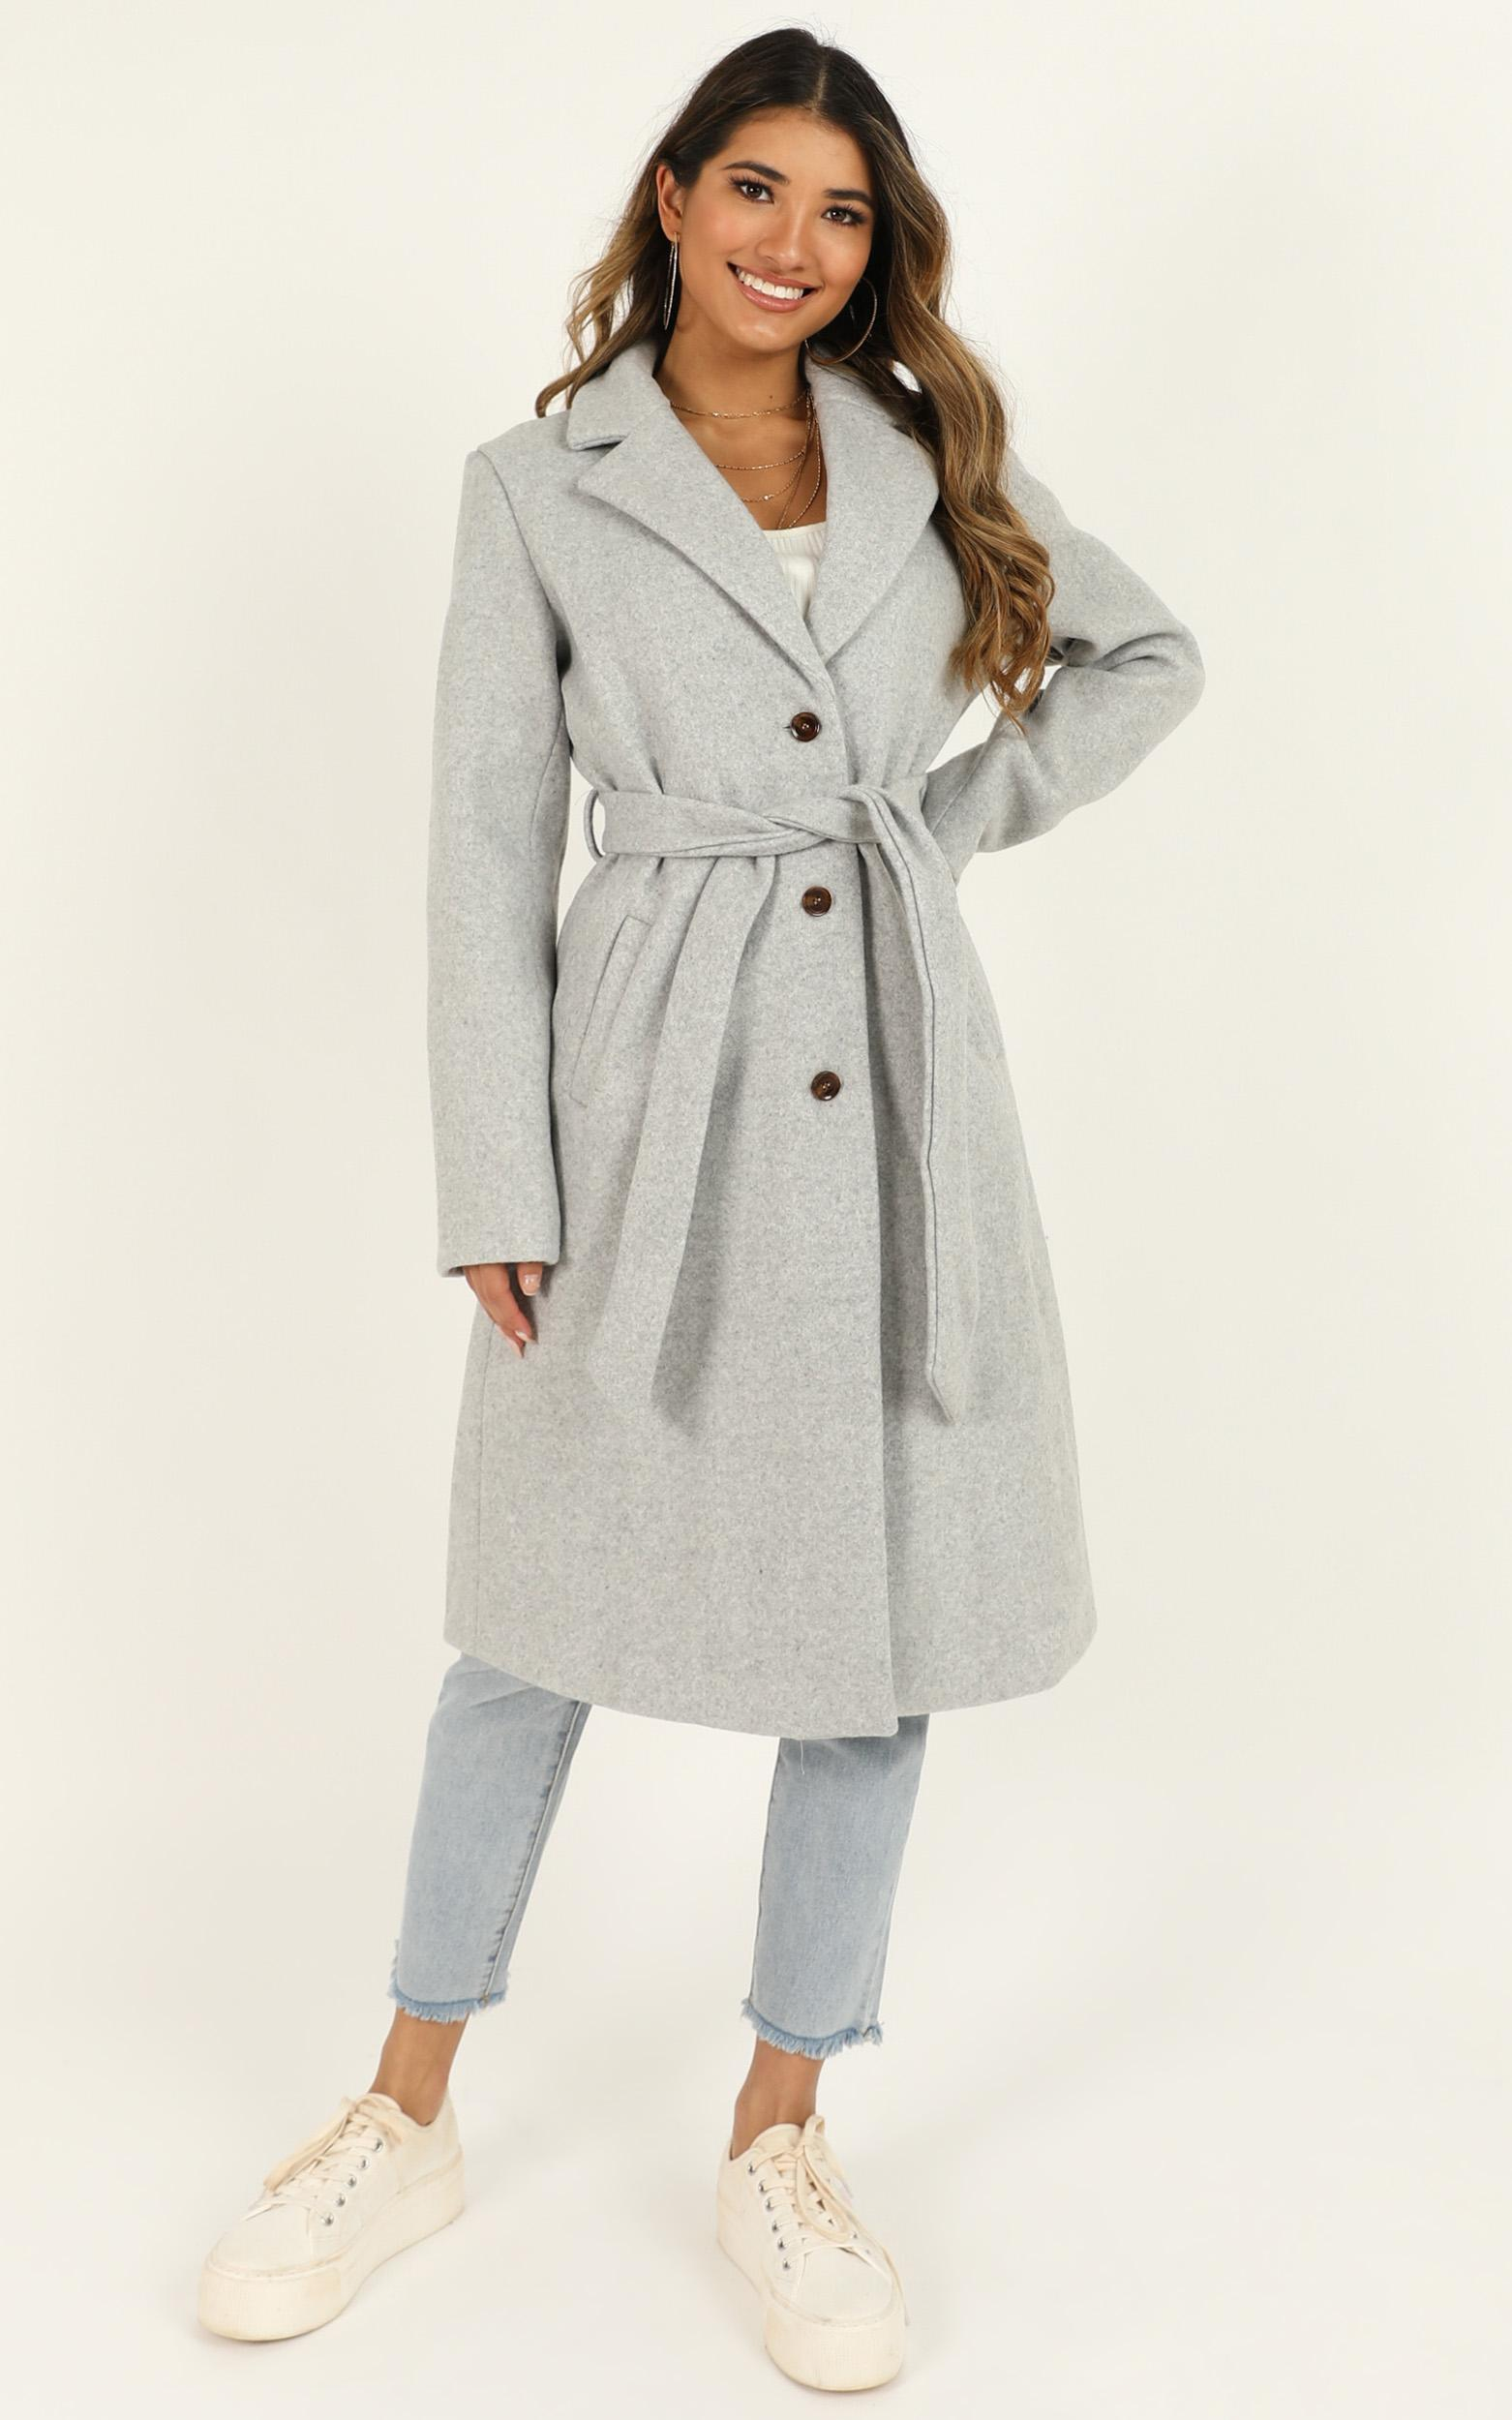 Back To The Big City Coat in grey - 20 (XXXXL), Grey, hi-res image number null